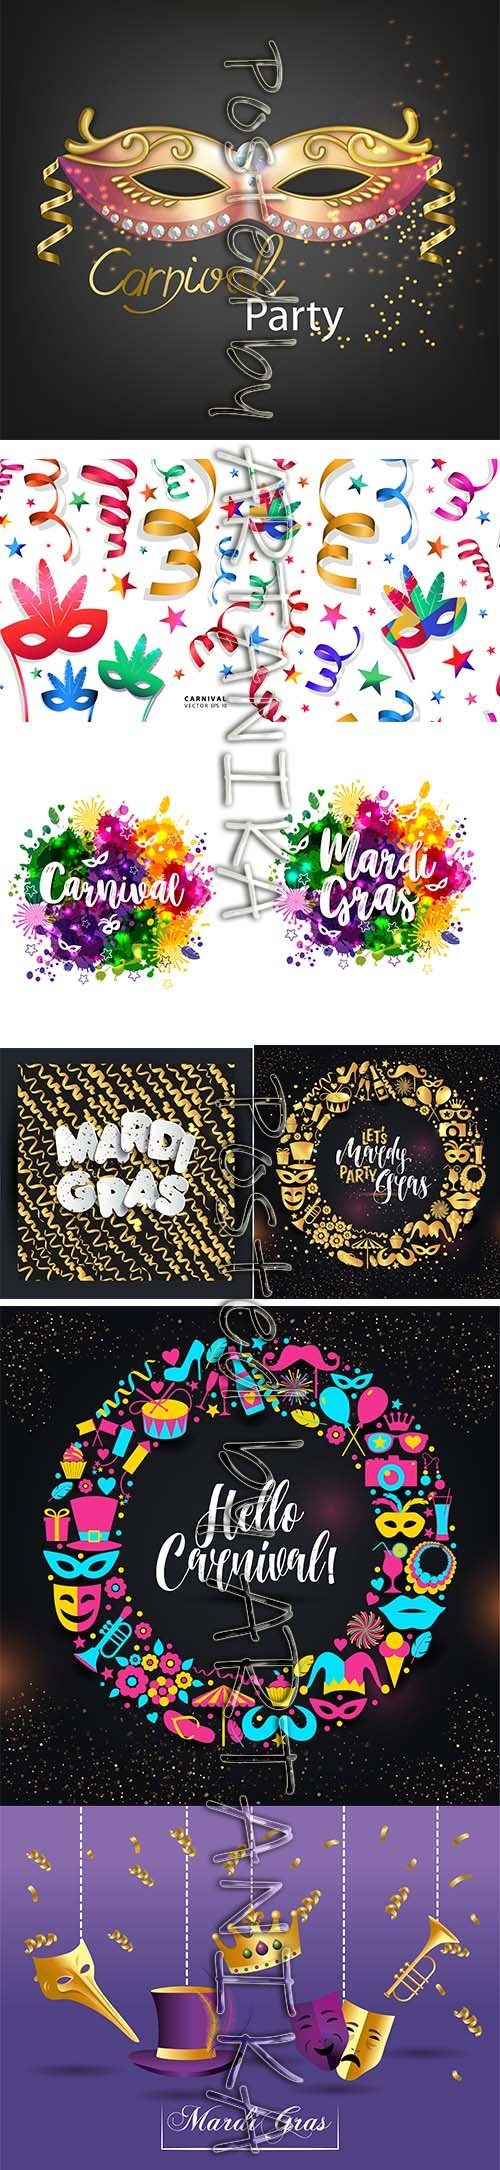 Mardi Gras Carnival Party Background Vector Pack Vol 8